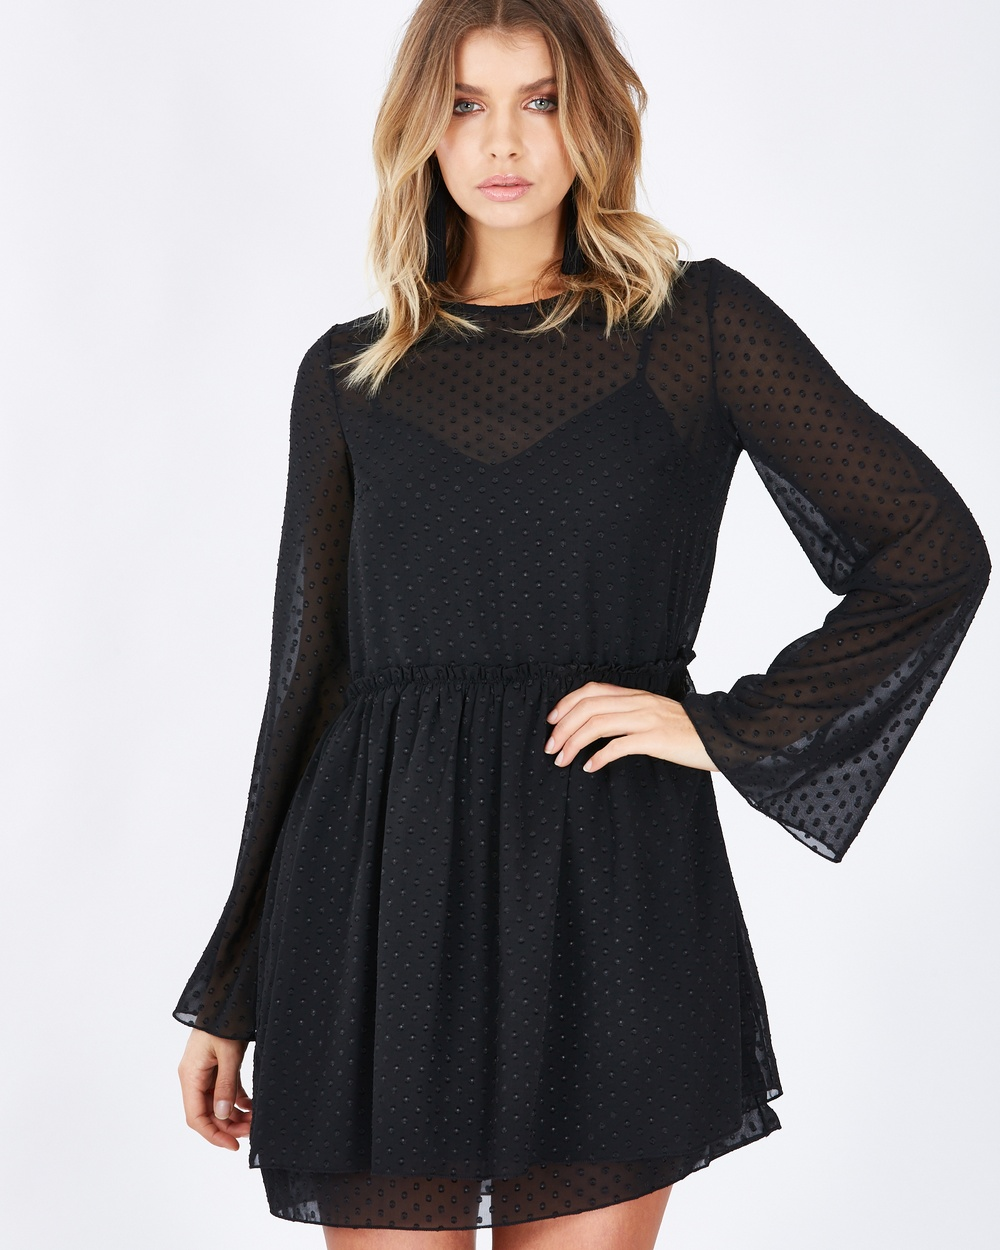 Calli Astrid Sheer Shift Dress Dresses Black Polka-dot Astrid Sheer Shift Dress